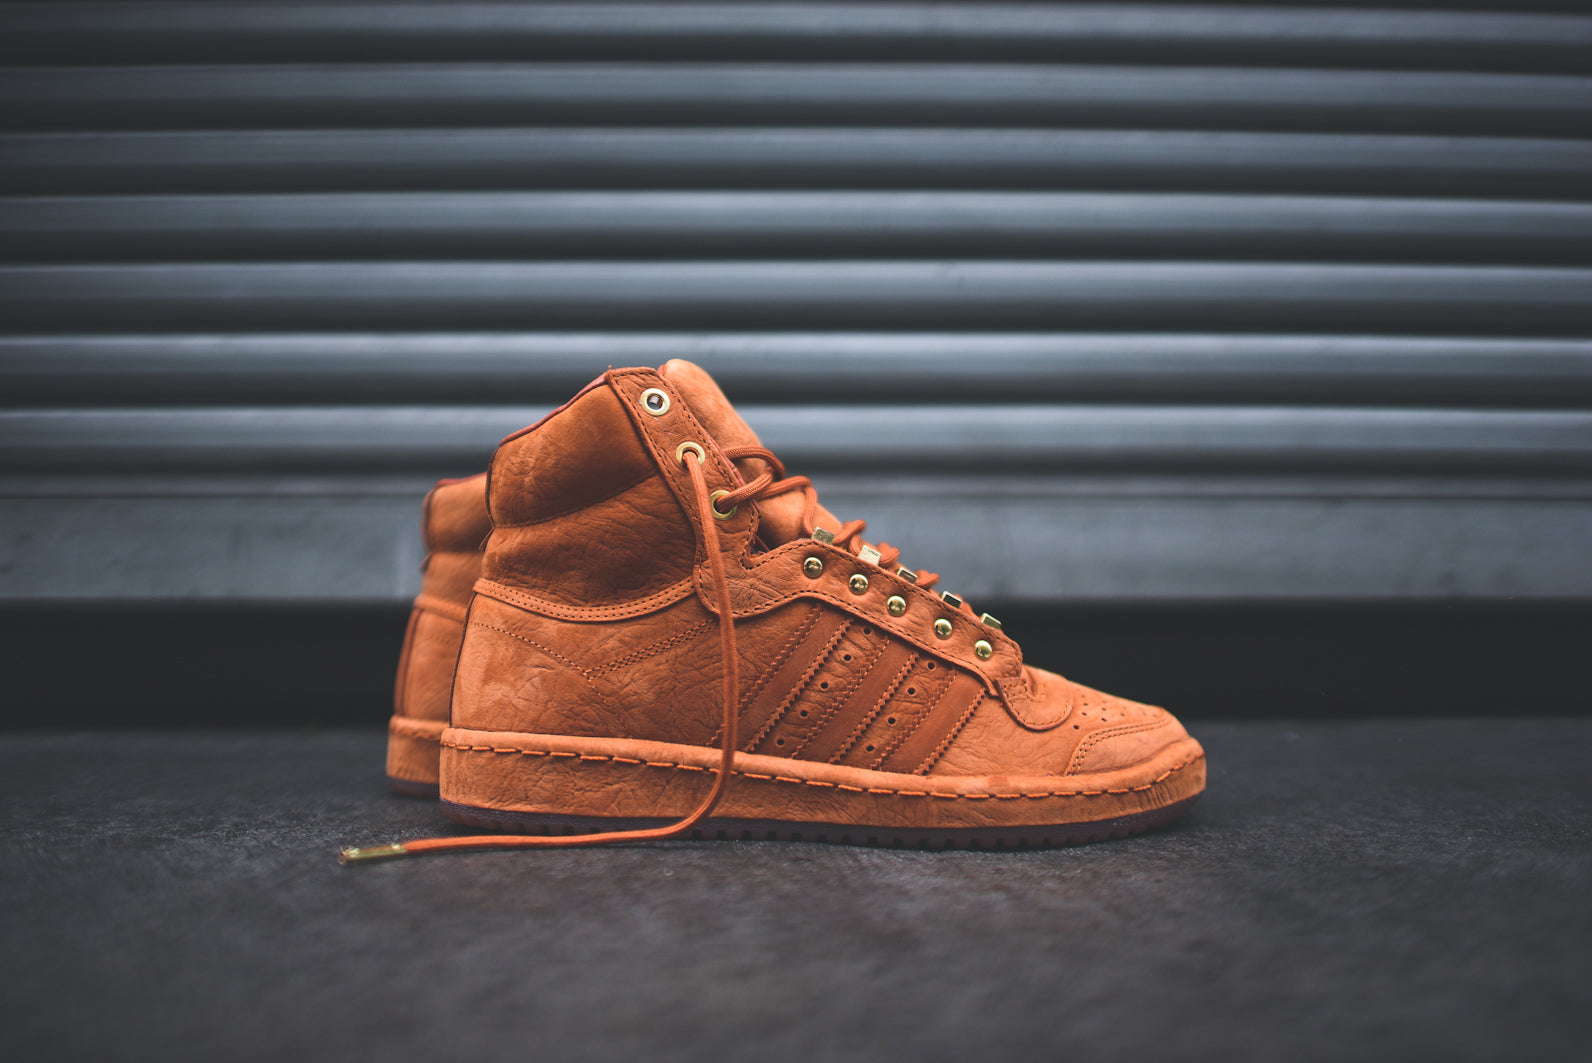 The adidas Originals Top Ten Hi - Fox Red is available now at both KITH  locations and online at KithNYC.com.